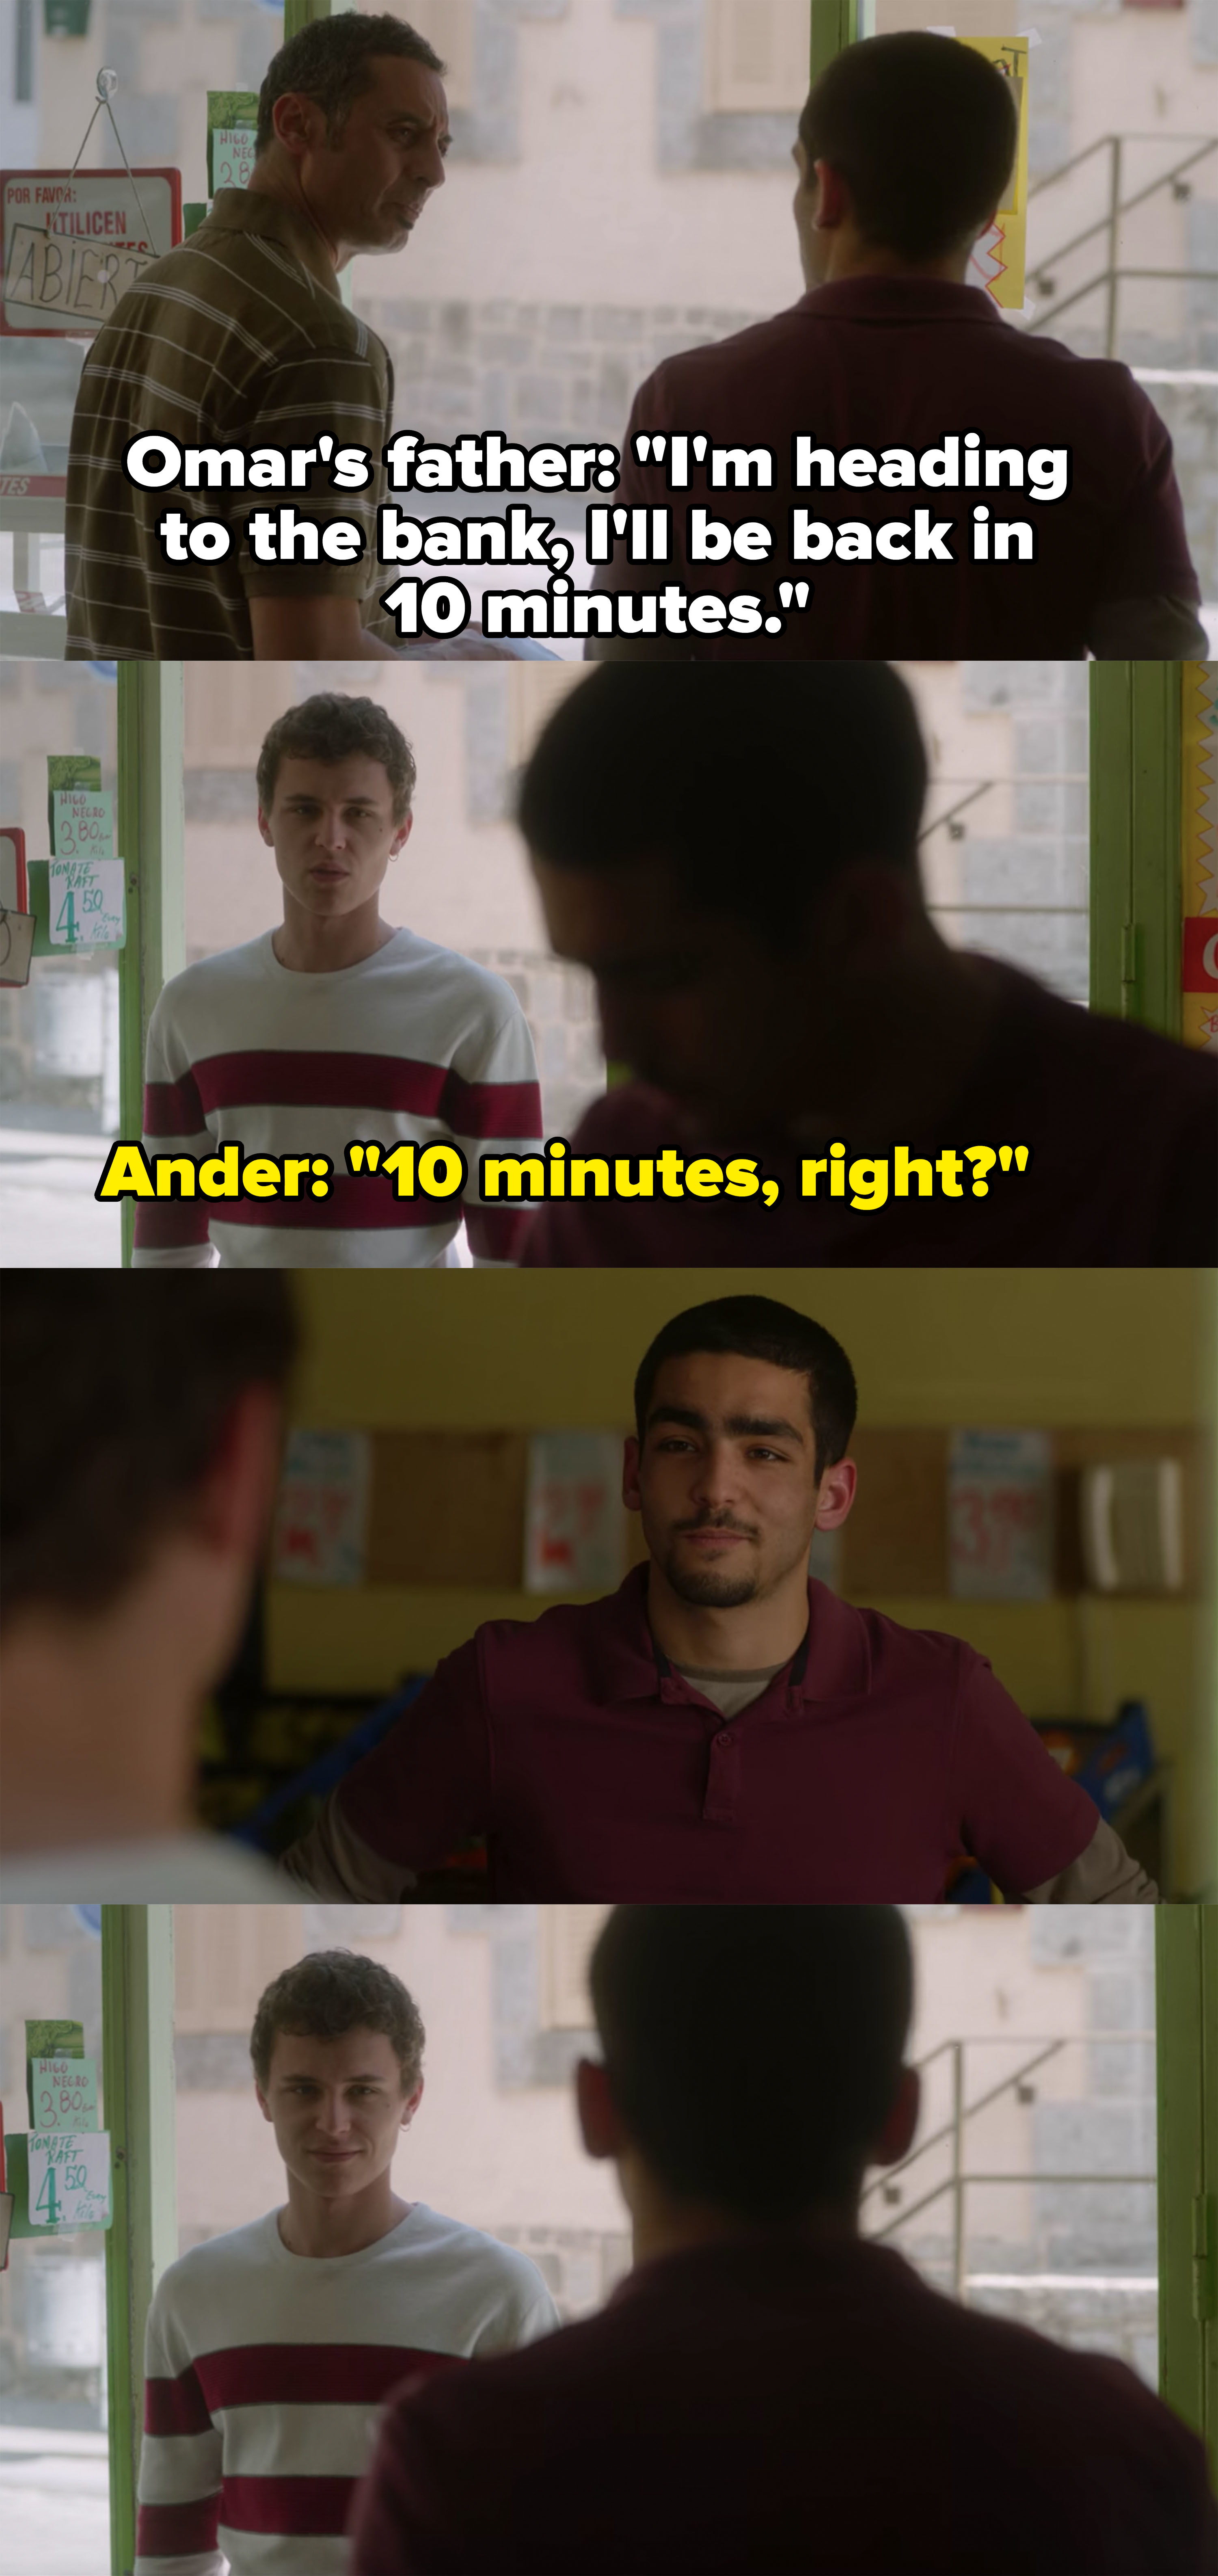 """Omar's dad says he's going to the bank and will be back in 10 minutes, Ander appears and says """"10 minutes right?"""""""